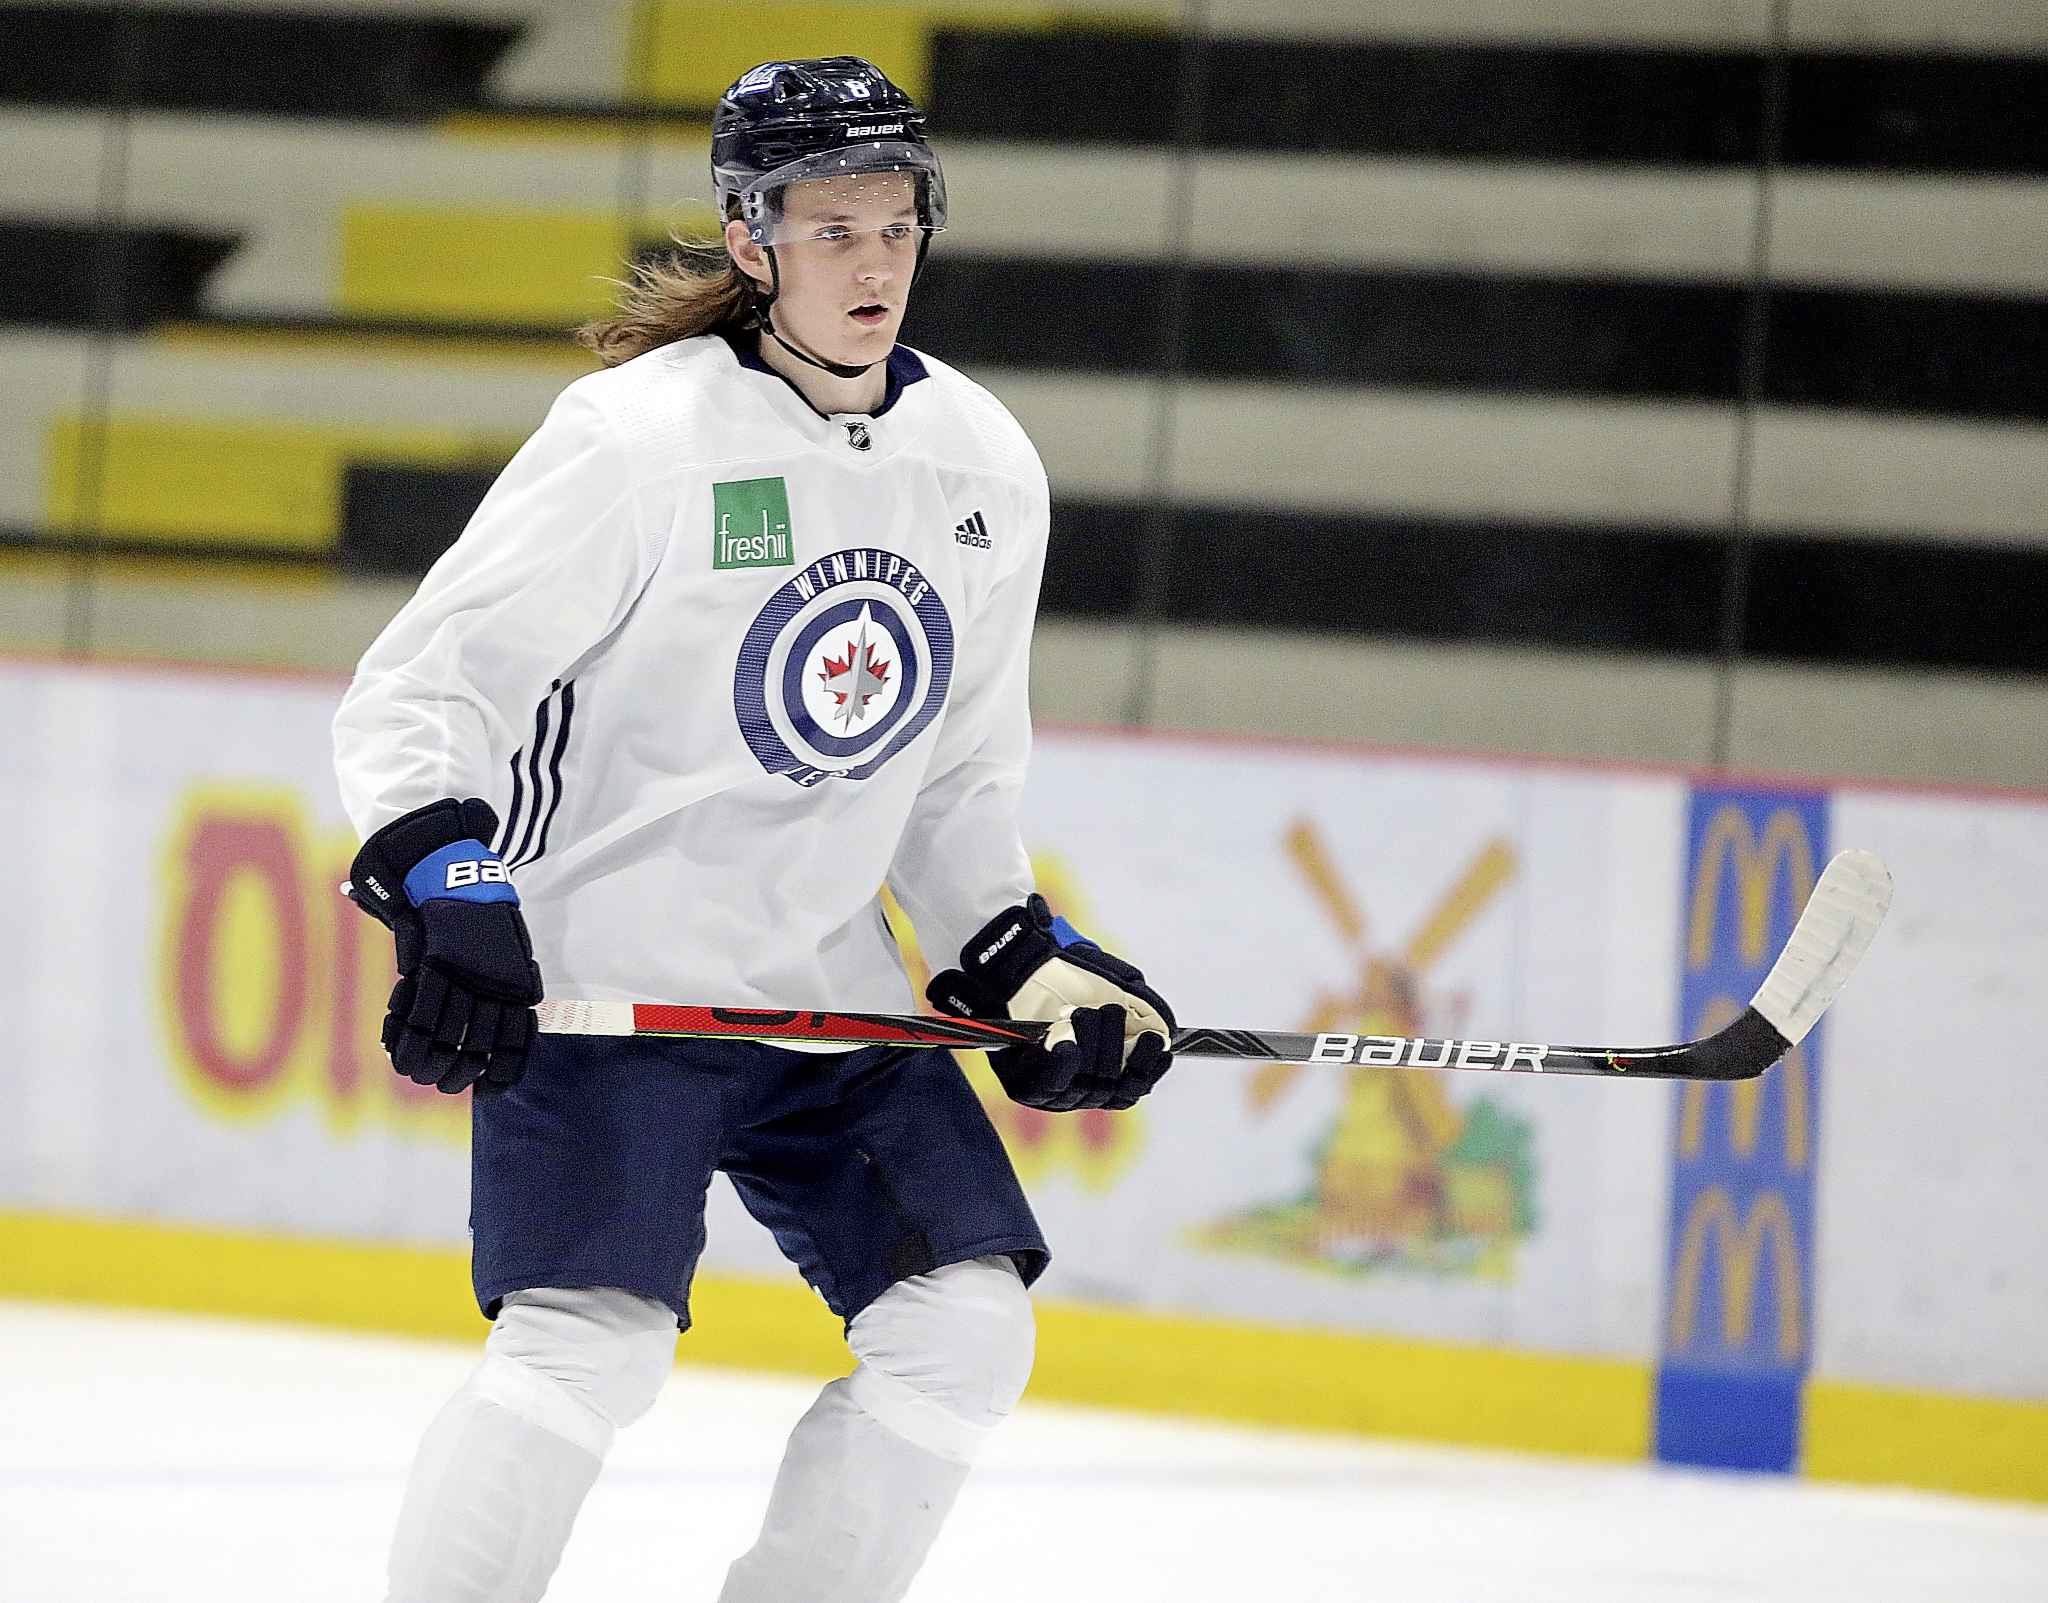 JASON HALSTEAD / WINNIPEG FREE PRESS <p/> Defenceman Sami Niku is possibly the best candidate to make a full-time jump from the Moose, but how well will he fill holes left by the departures of Tyler Myers, Ben Chiarot or Jacob Trouba?